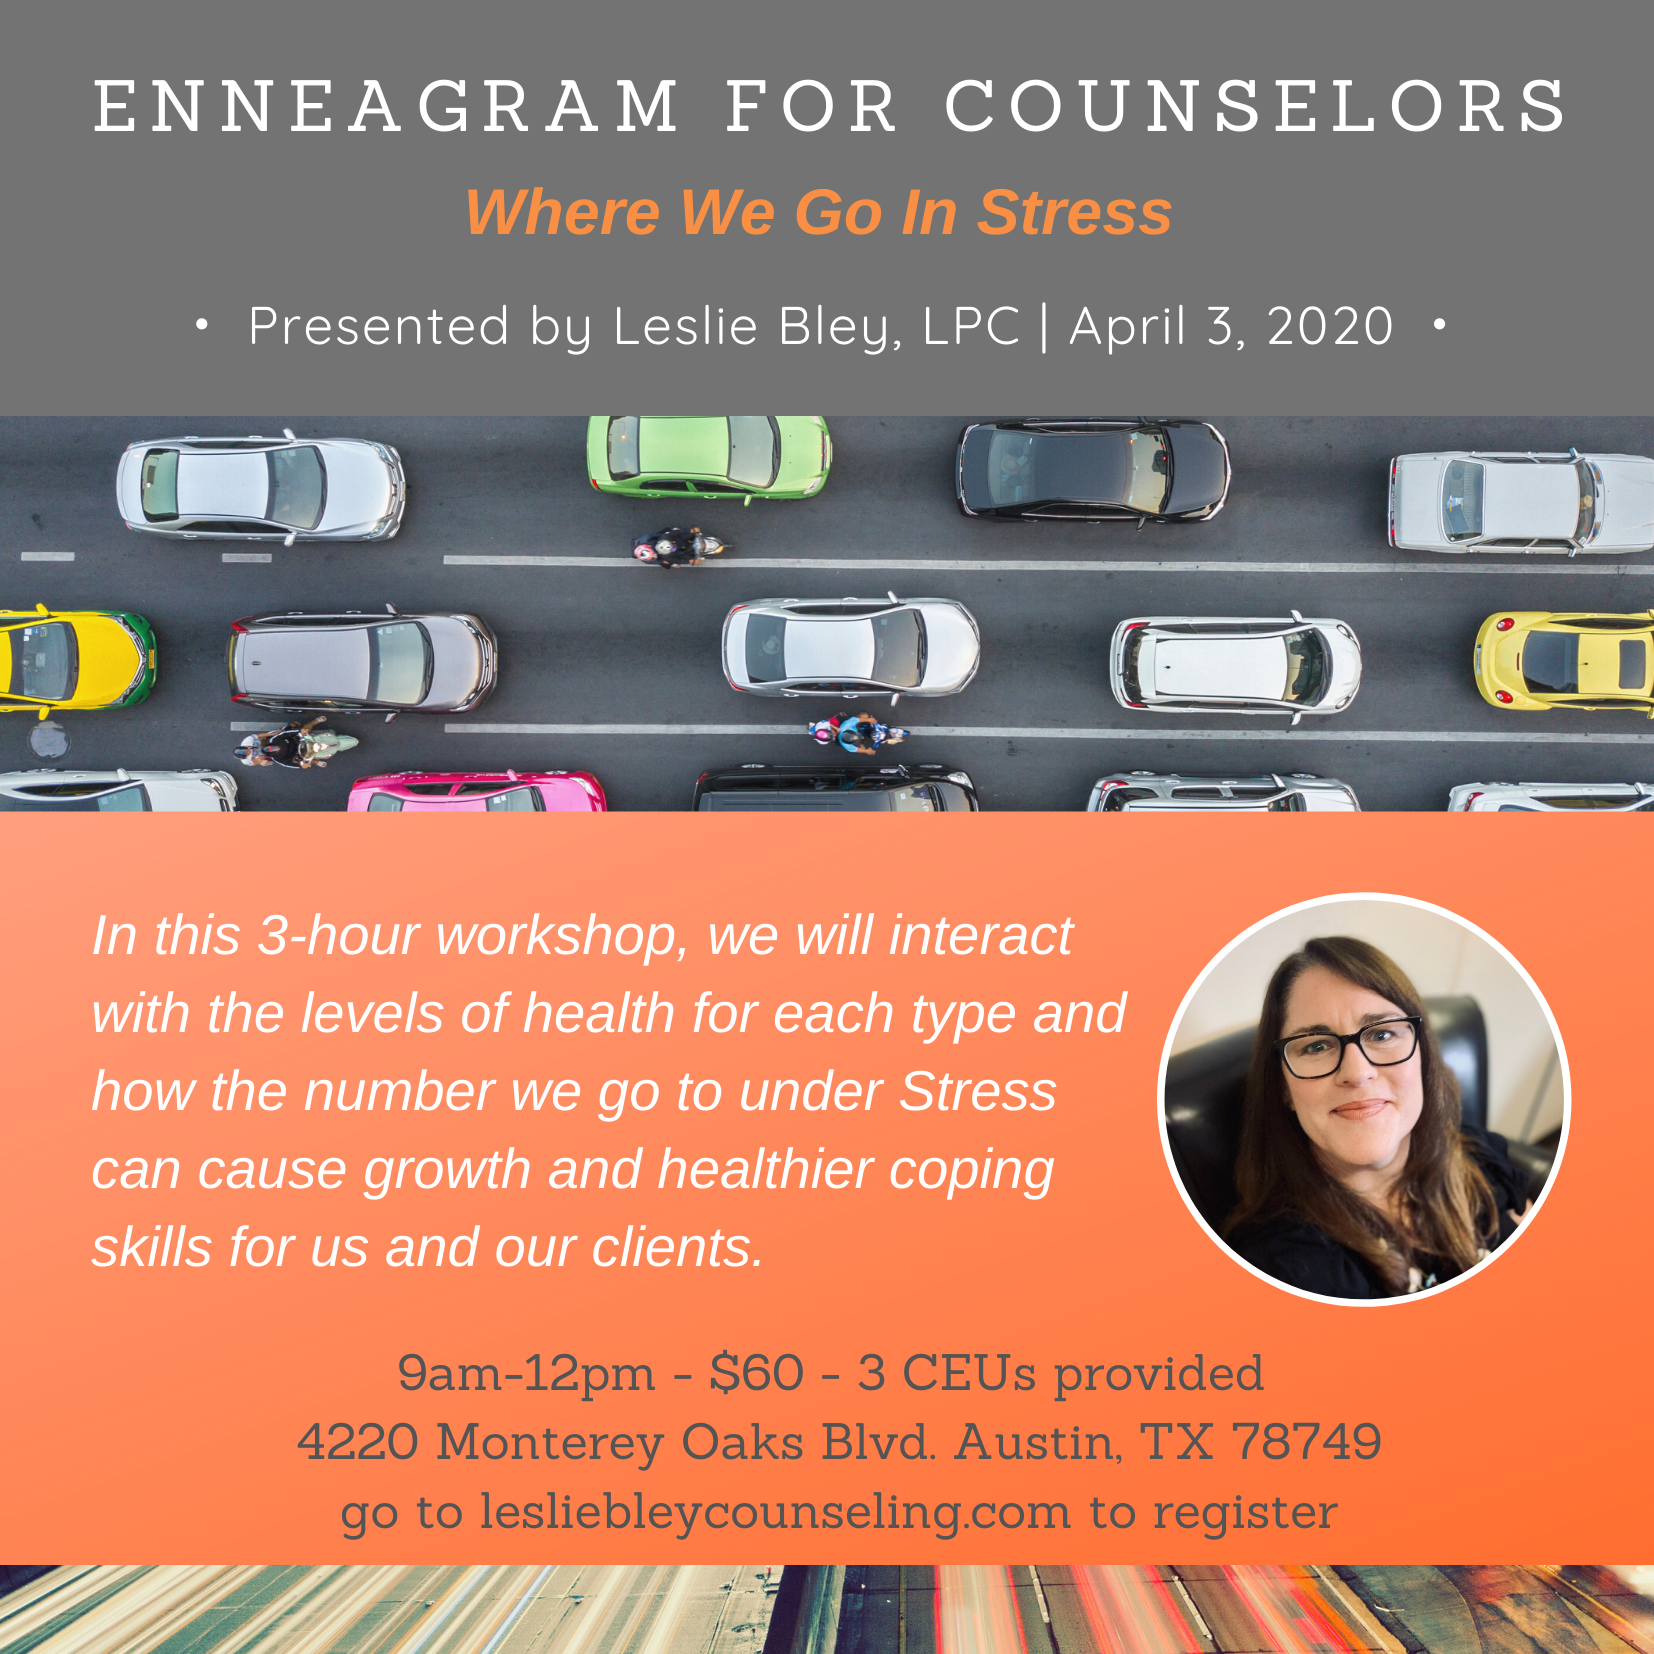 Enneagram For Counselors: Where We Go In Stress